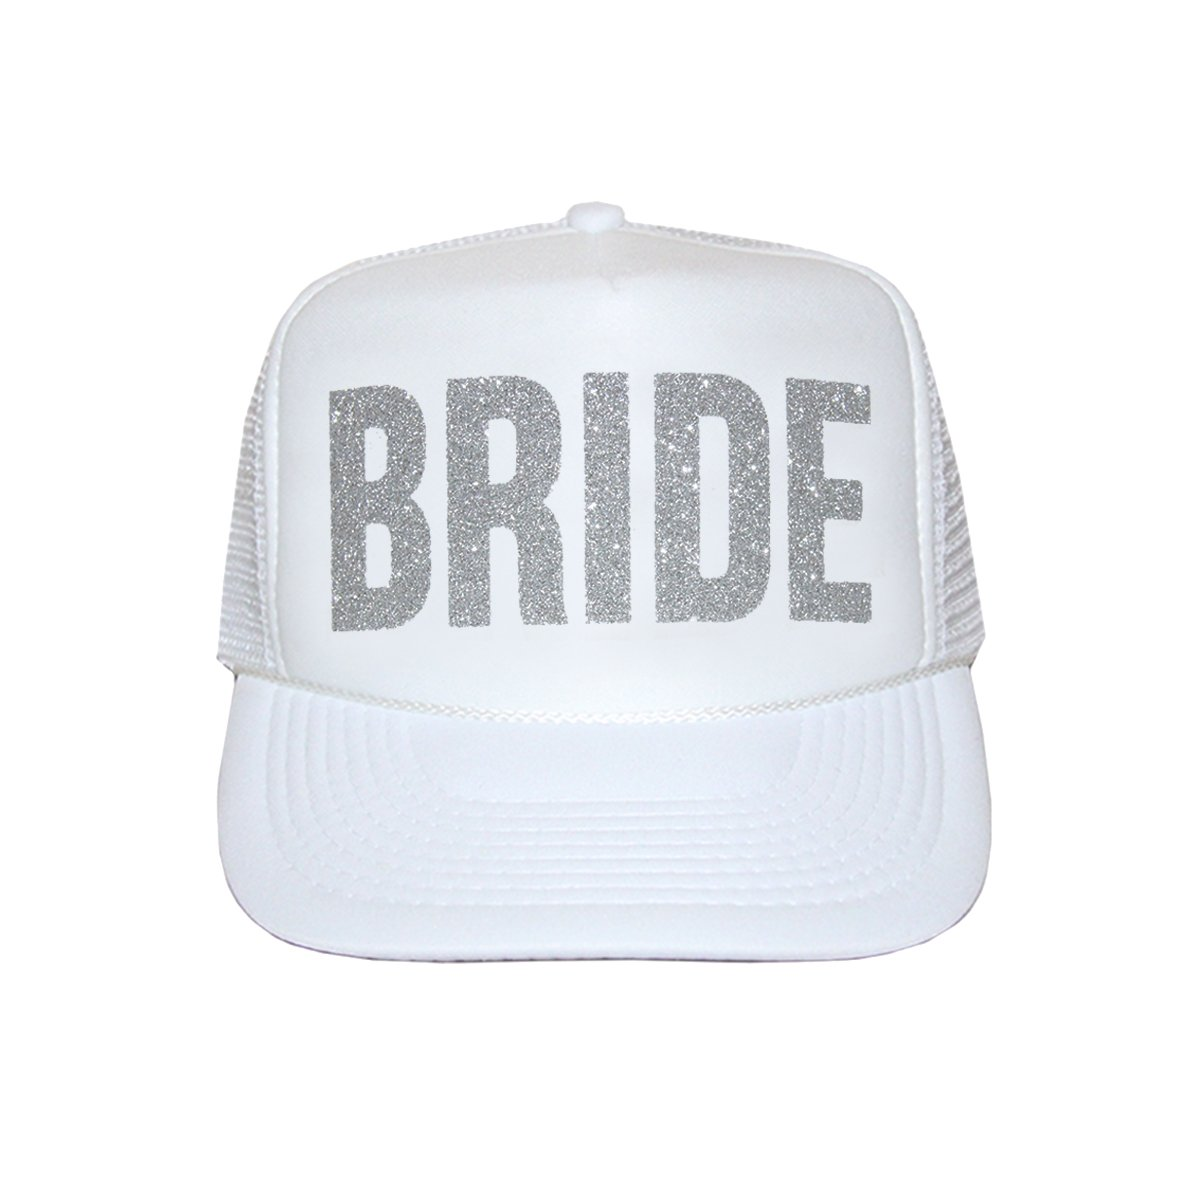 abc9a04f5d3 Bride Trucker Hat by Classy Bride (White and Aqua Glitter) at Amazon  Women s Clothing store